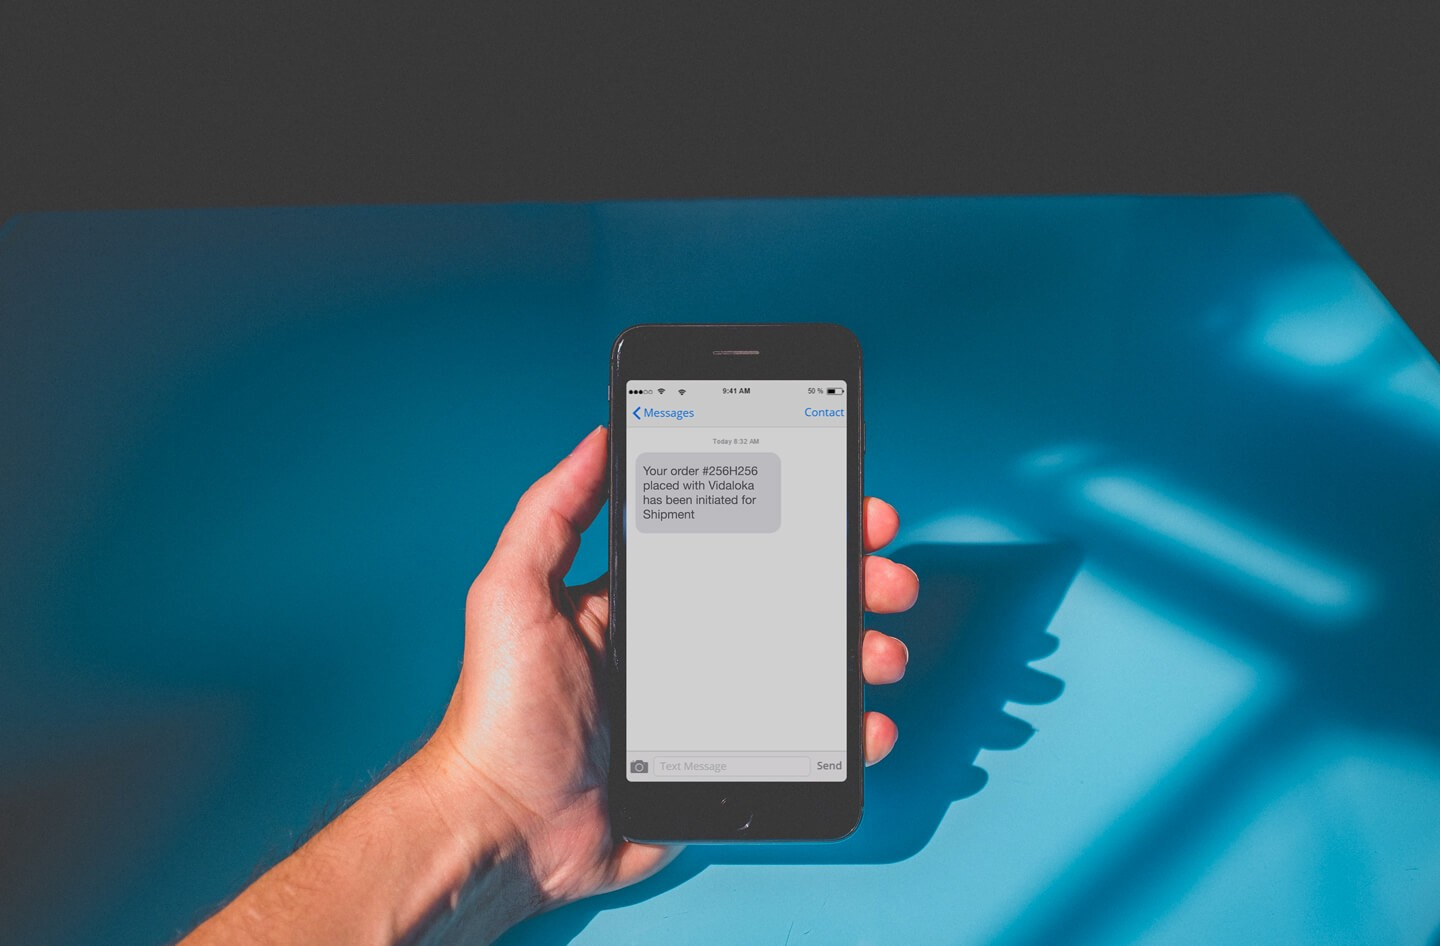 SMS services